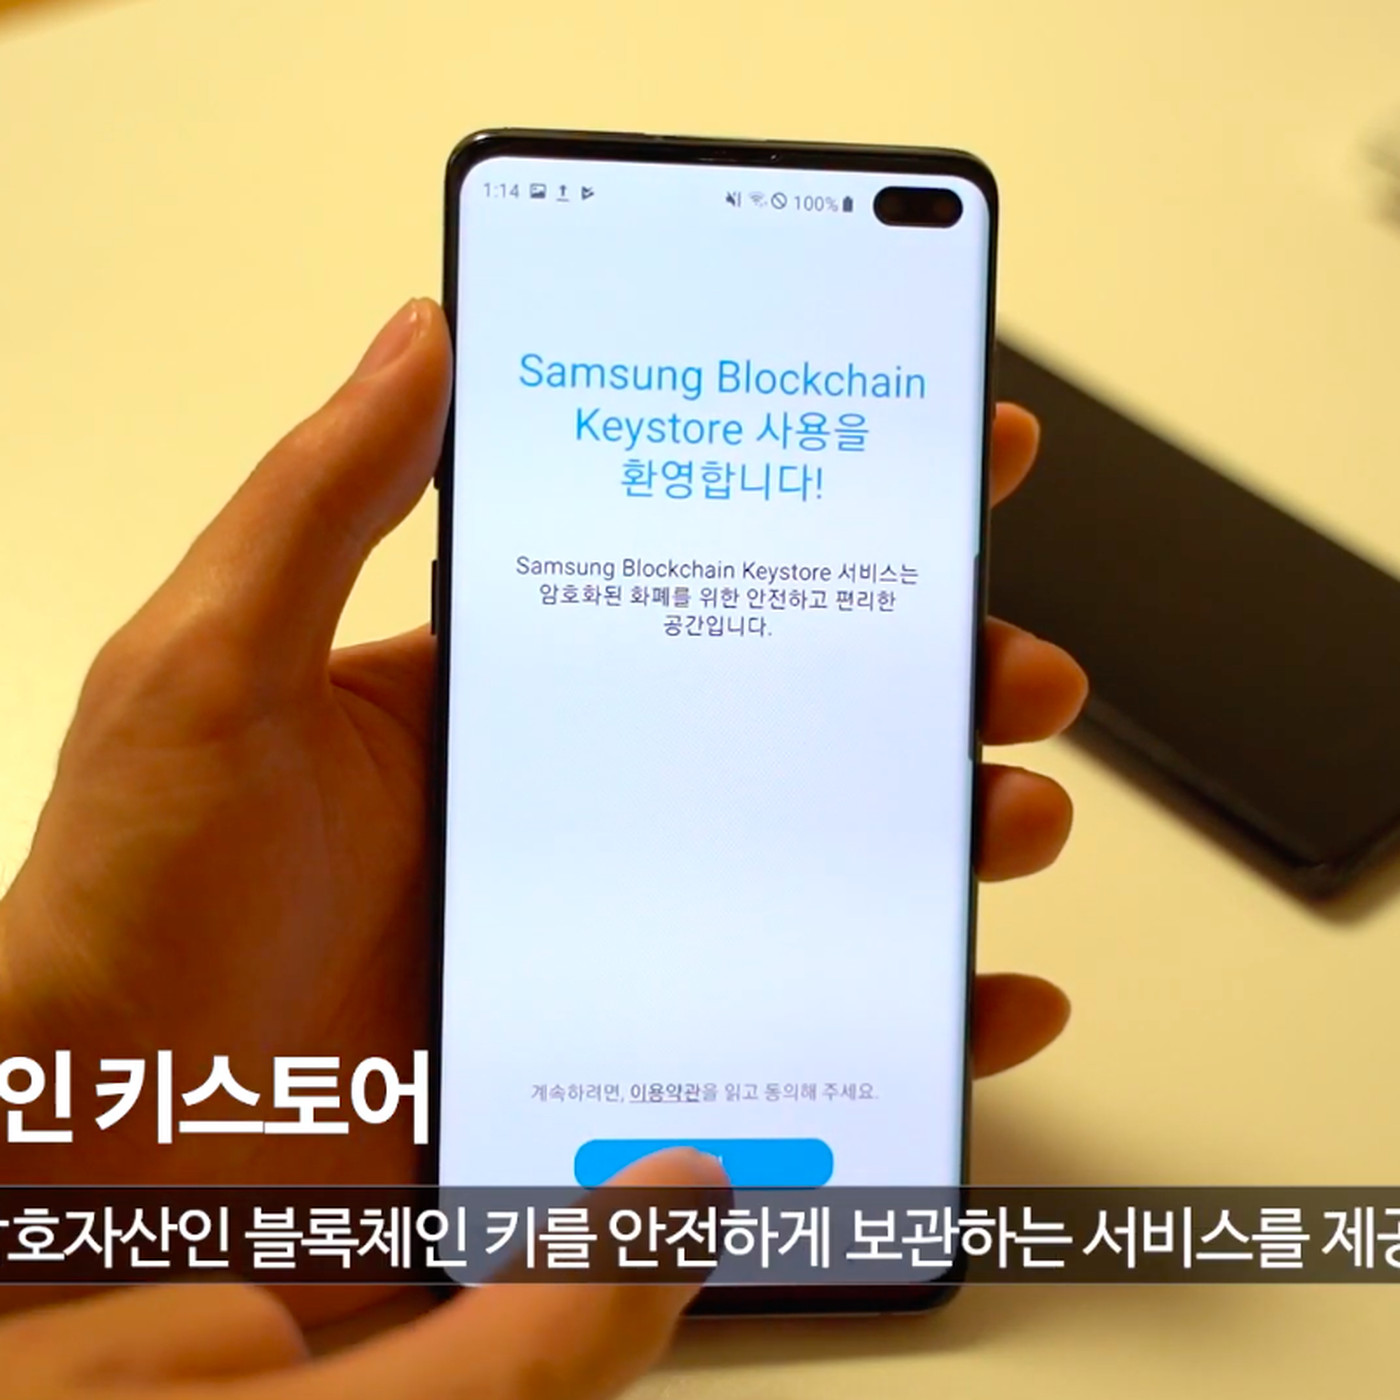 samsung cryptocurrency wallet